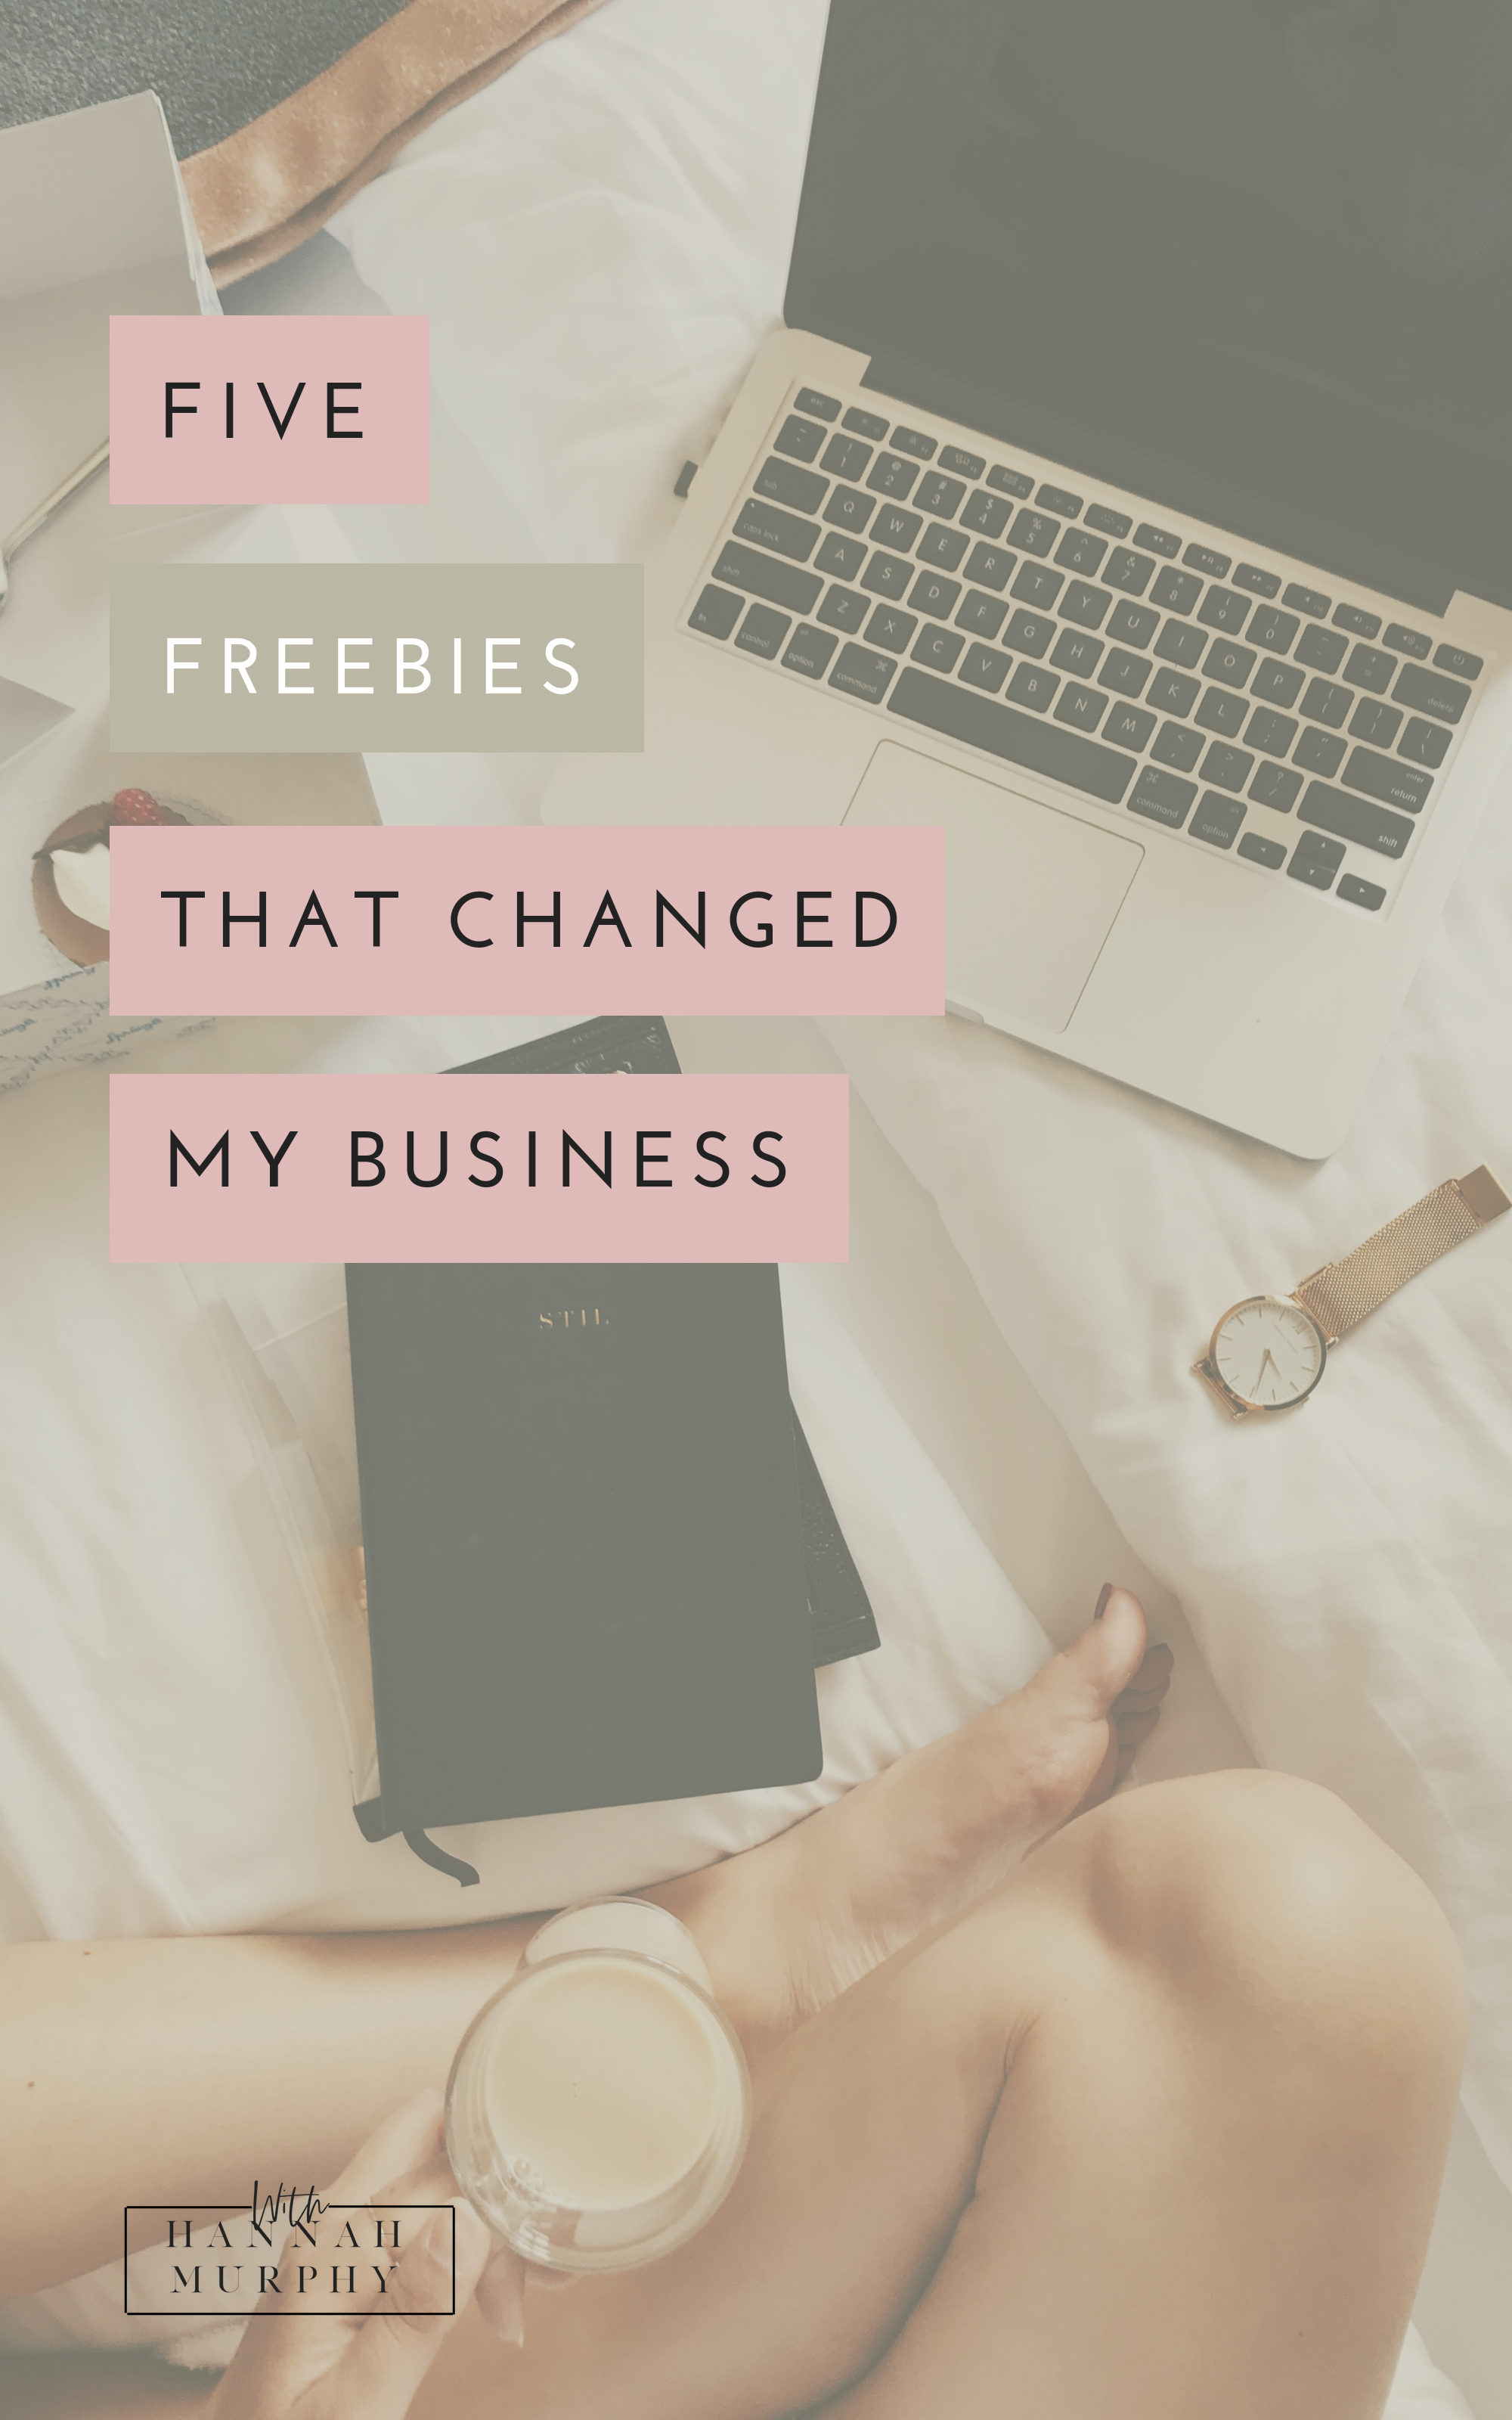 I have invested a lot of money over my business journey in courses, coaching, tools and resources... and each of them have had a huge impact in my business. I believe that when we invest, our business grows. However, today I wanted to share with you 5 FREE resources that have helped my business greatly.